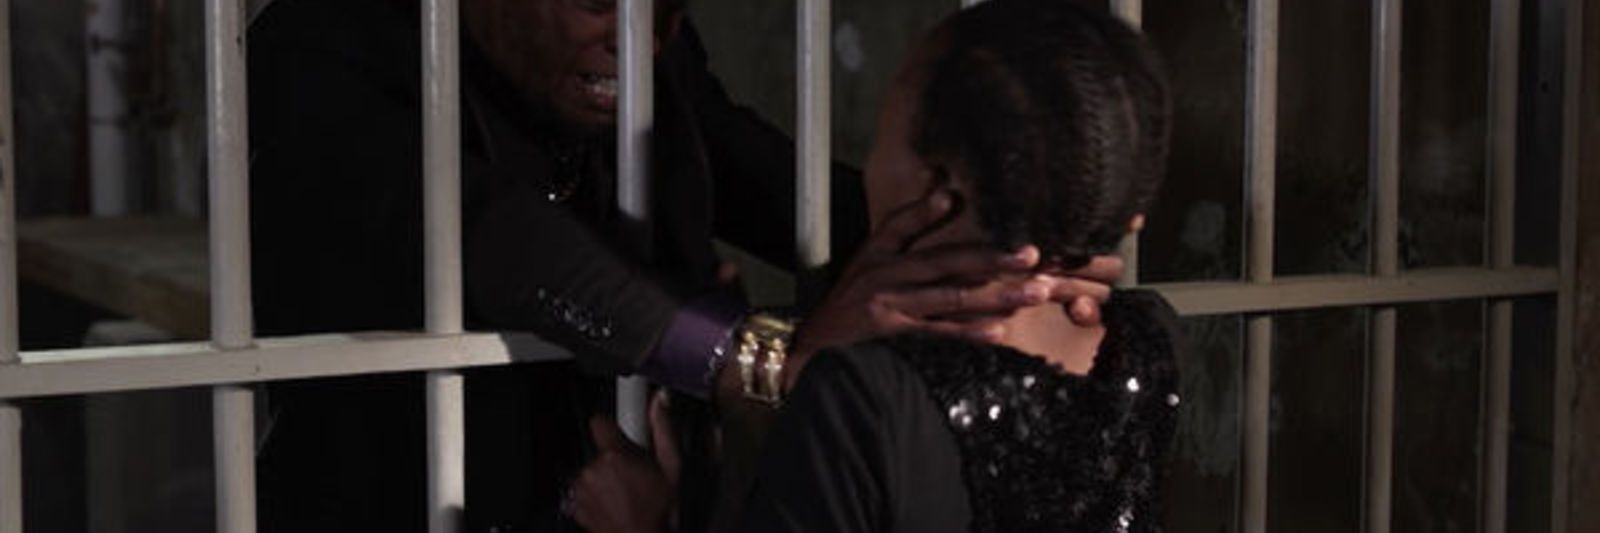 Mzansi Magic The Queen Trick Or Tricked